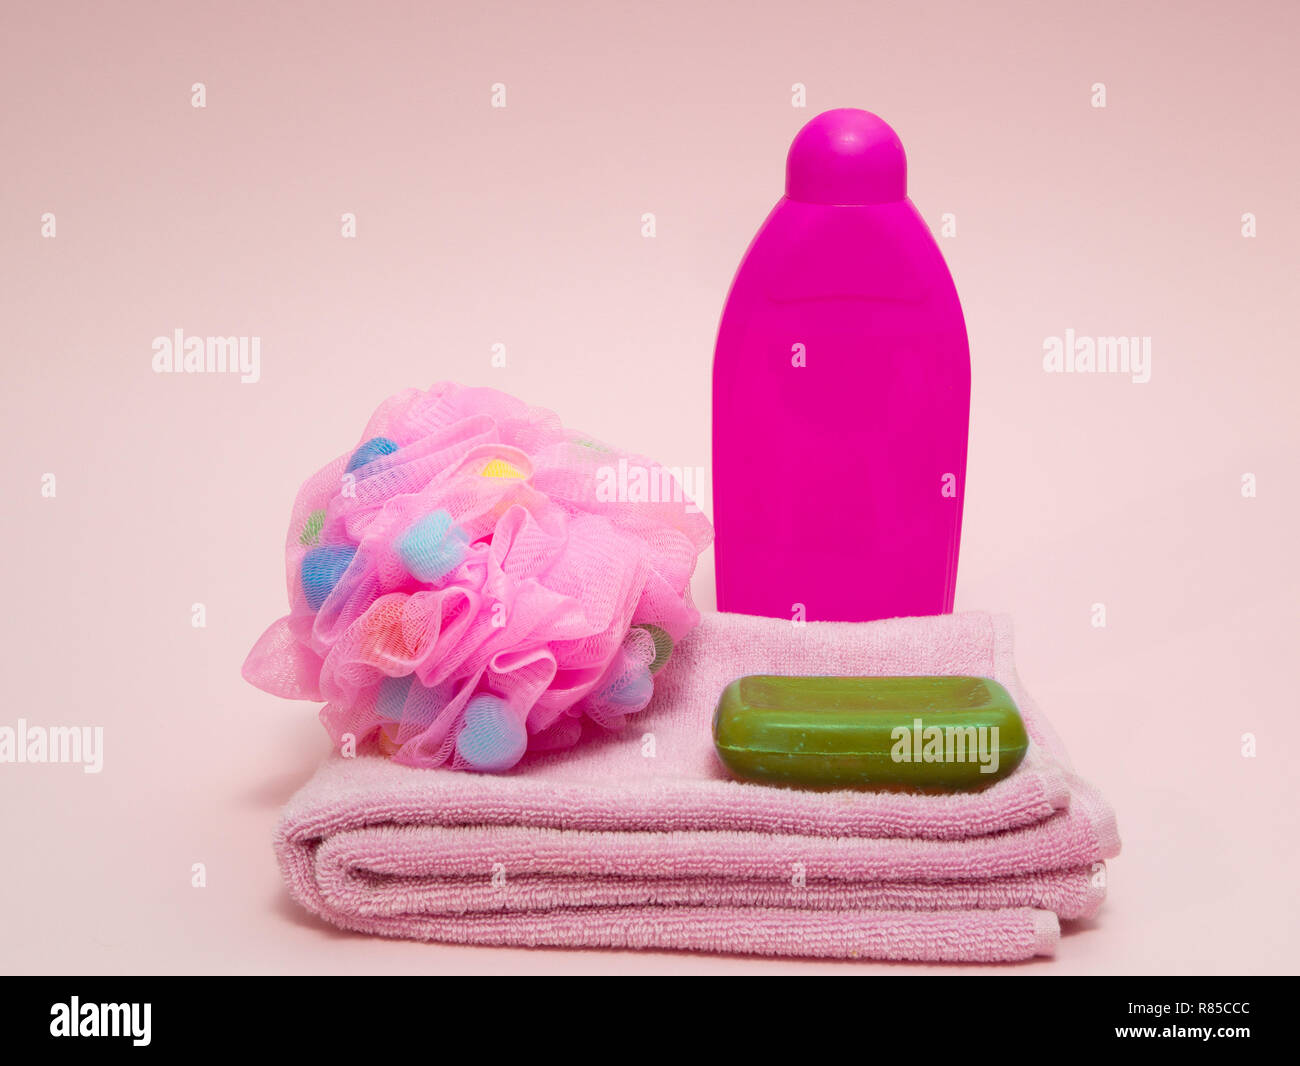 set of woman aroma therapy shower preparing equipment like towel, puffy sponge, green fruit aroma soap and shampoo on pink background - Stock Image